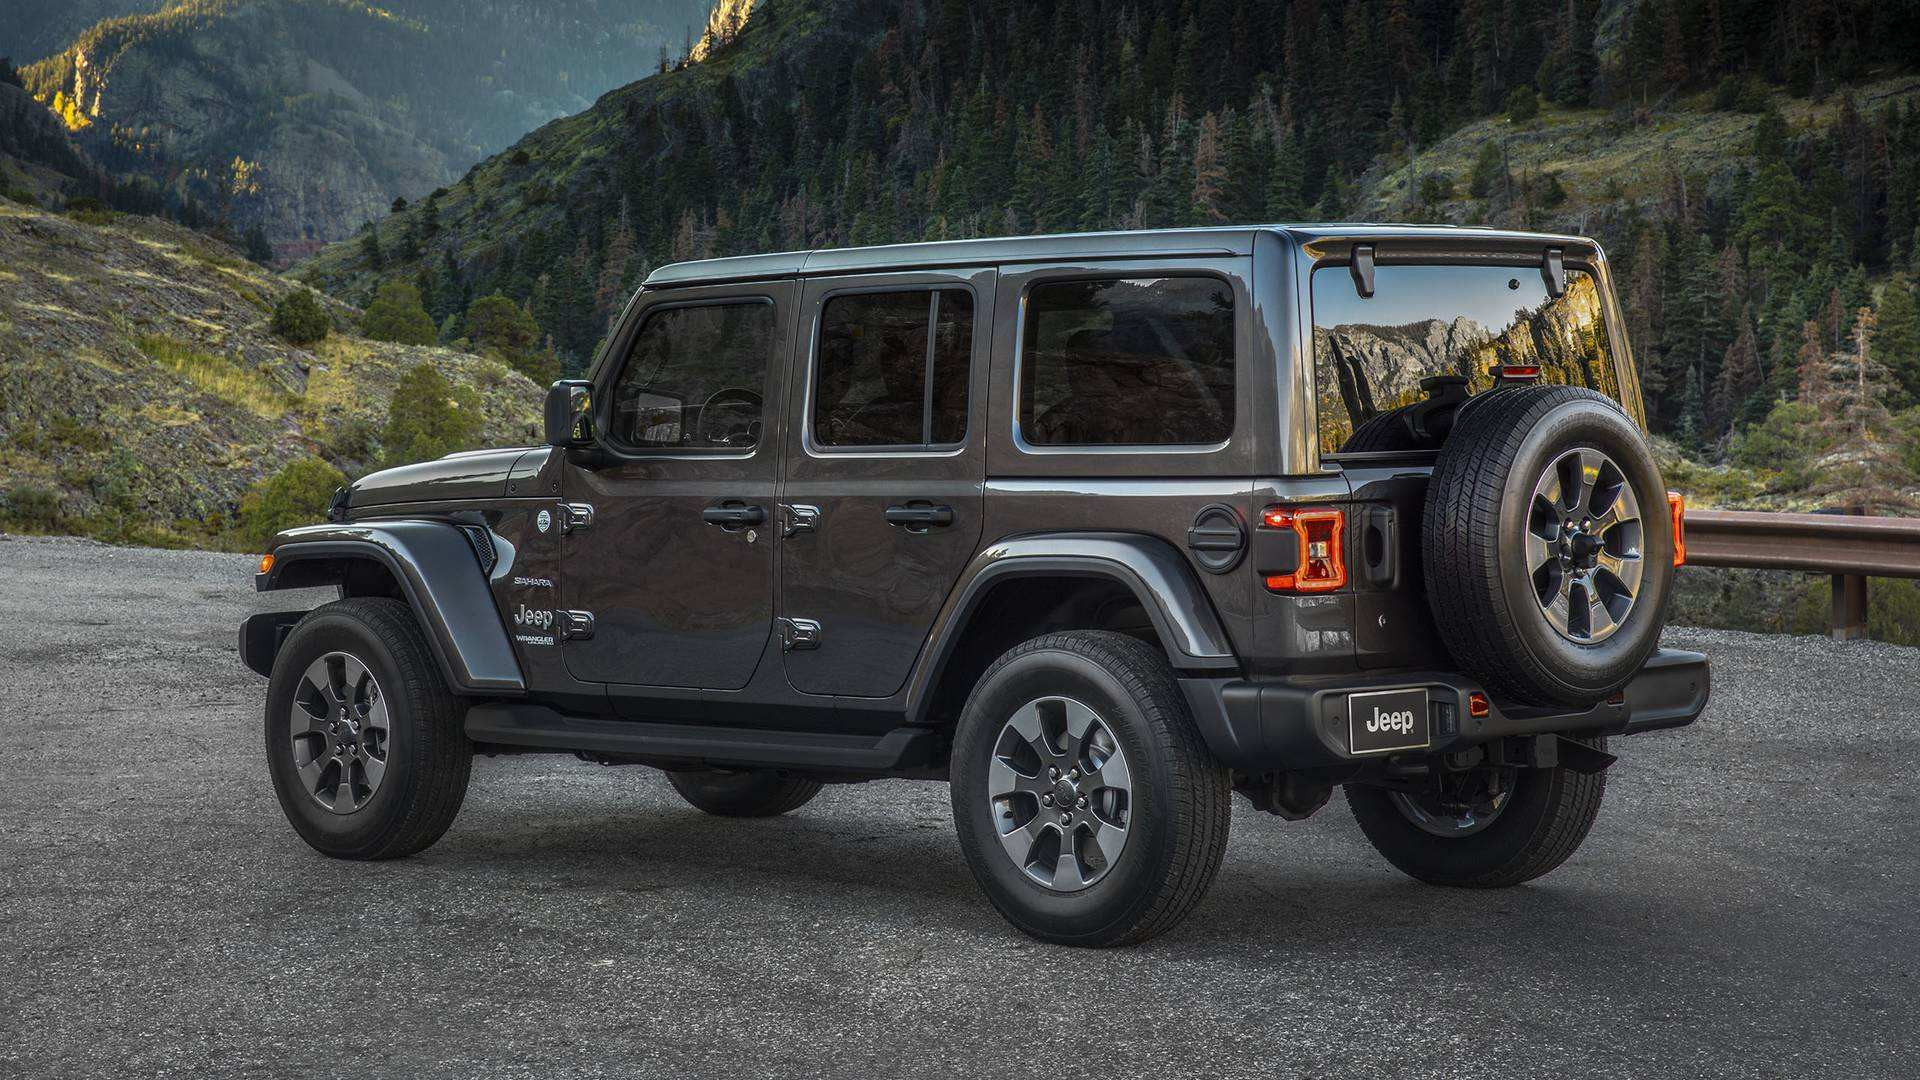 92 The 2019 Jeep 3 0 Diesel Configurations by 2019 Jeep 3 0 Diesel